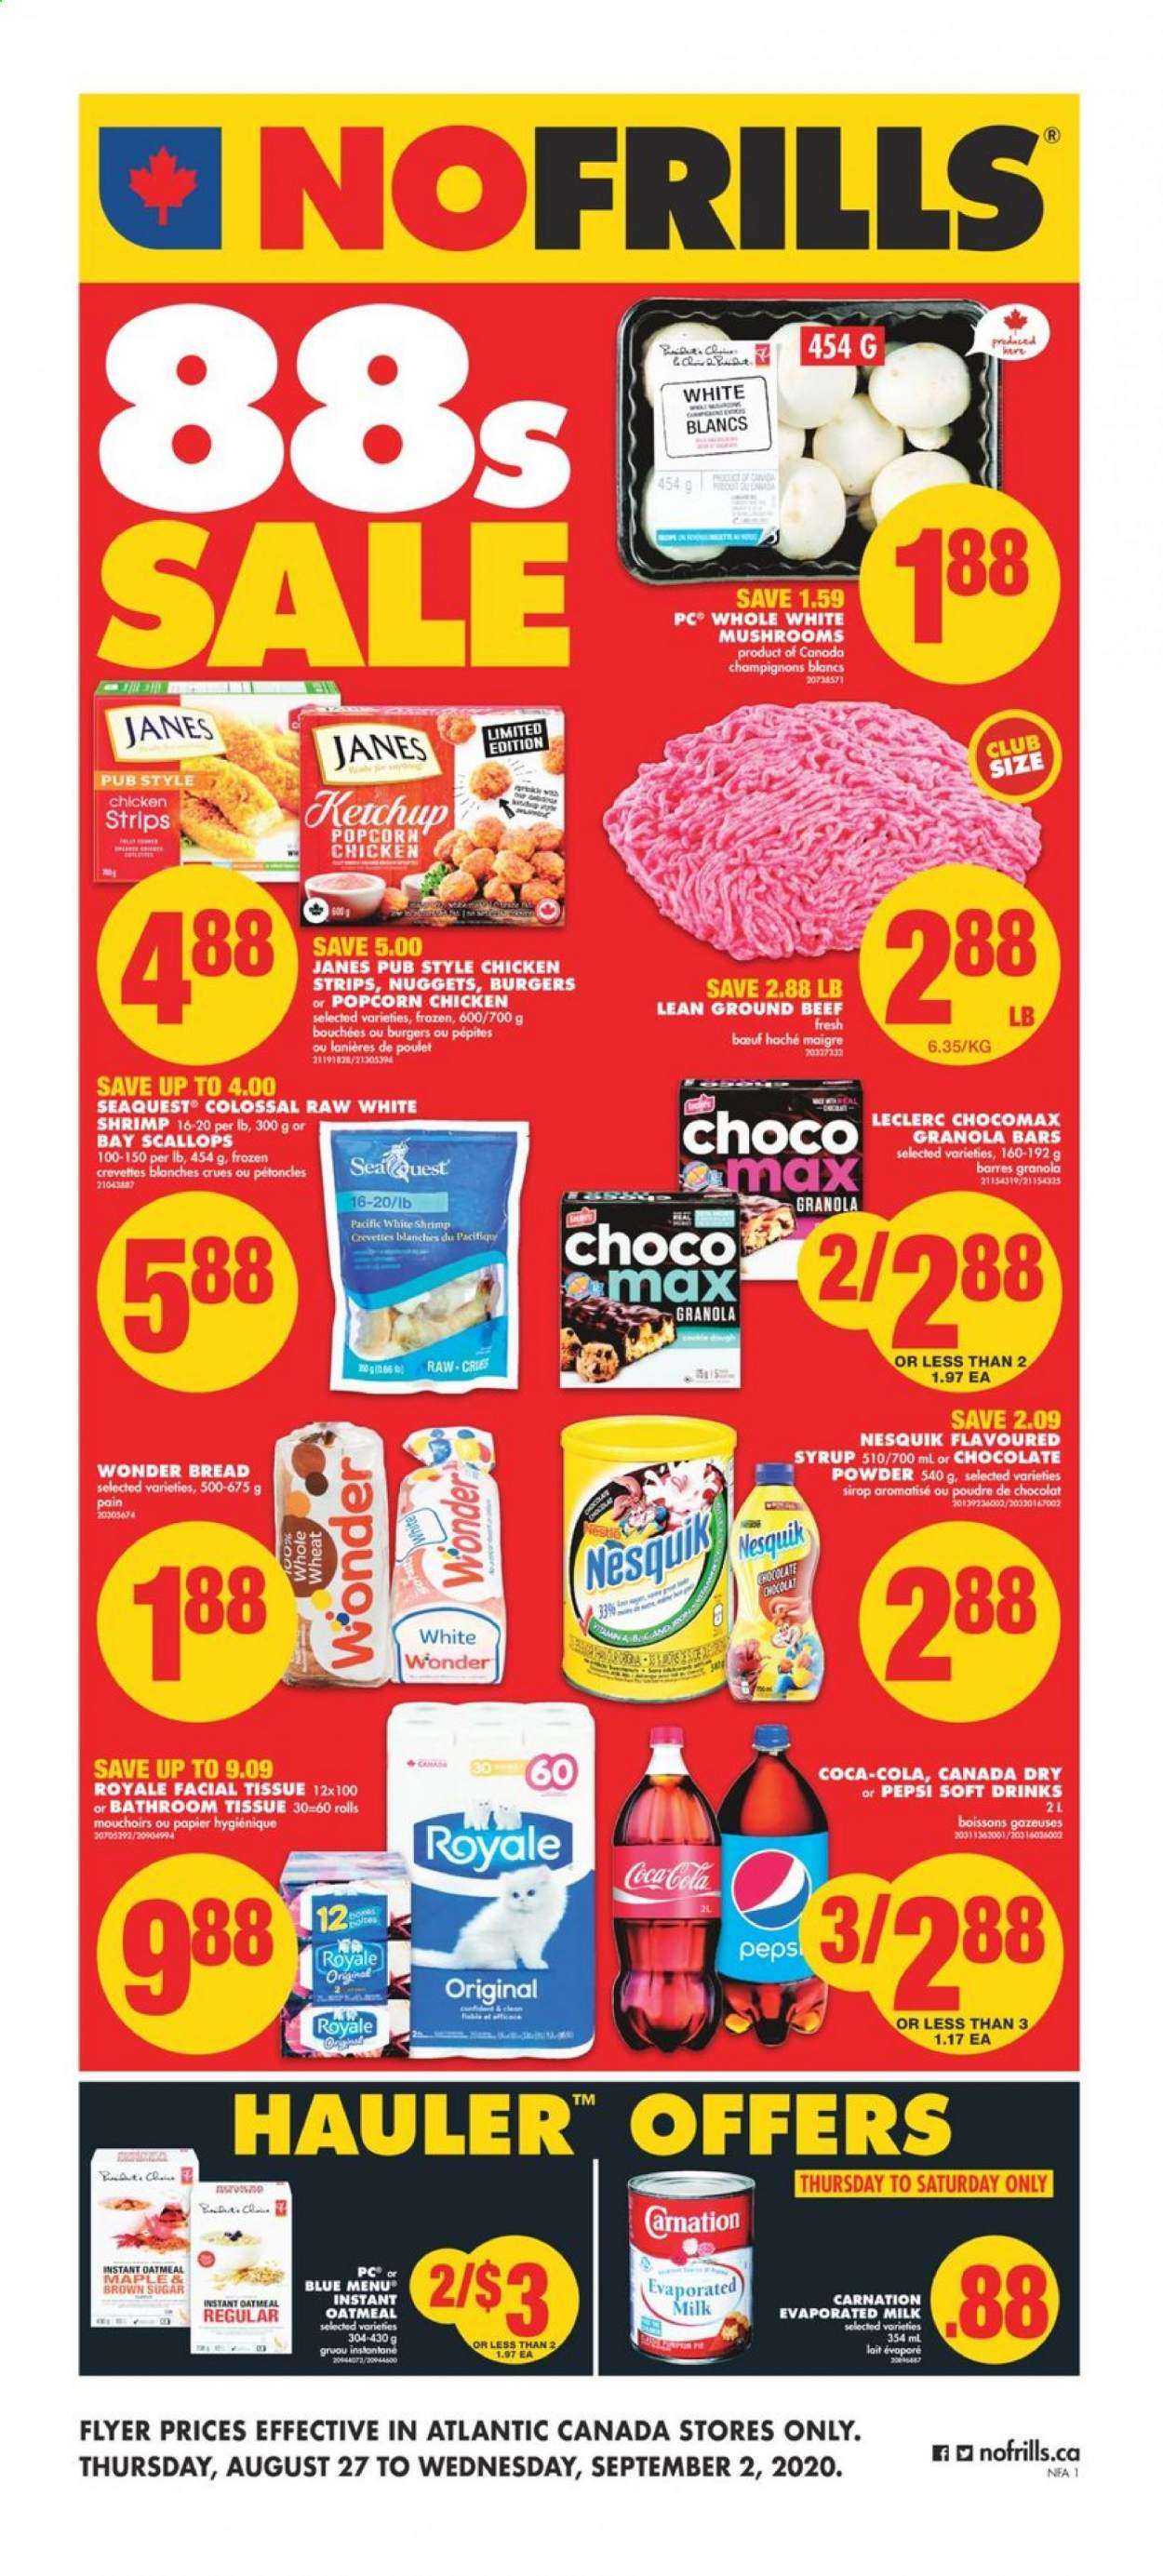 Circulaire No Frills - 27 Août 2020 - 02 Septembre 2020 - Produits soldés - beef meat, bread, brown sugar, canada dry, evaporated milk, frozen, granola, granola bars, ground beef, mushrooms, scallops, shrimp, sugar, ketchup, popcorn, chicken, pepsi, oatmeal, chocolate powder, nuggets, poulet, chocolat, lait, champignon, bouchées, crevette, sirop, mouchoirs, poudre, papier. Page 1.